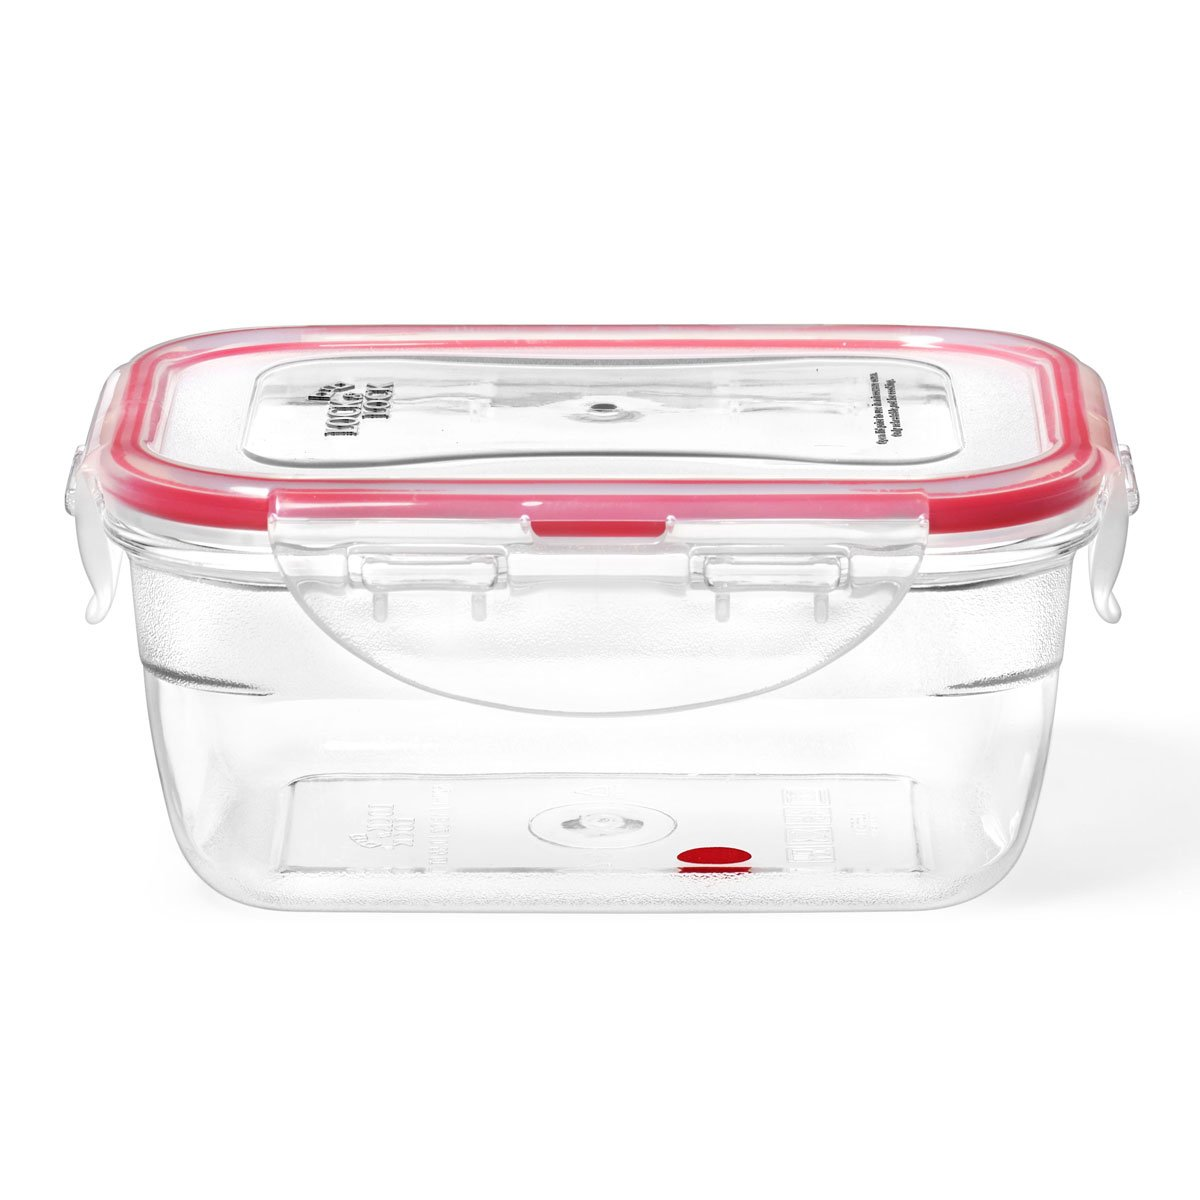 Lock and Lock by Starfrit Krystal 094404 1L Rectangular Plastic Container 094404-006-0000